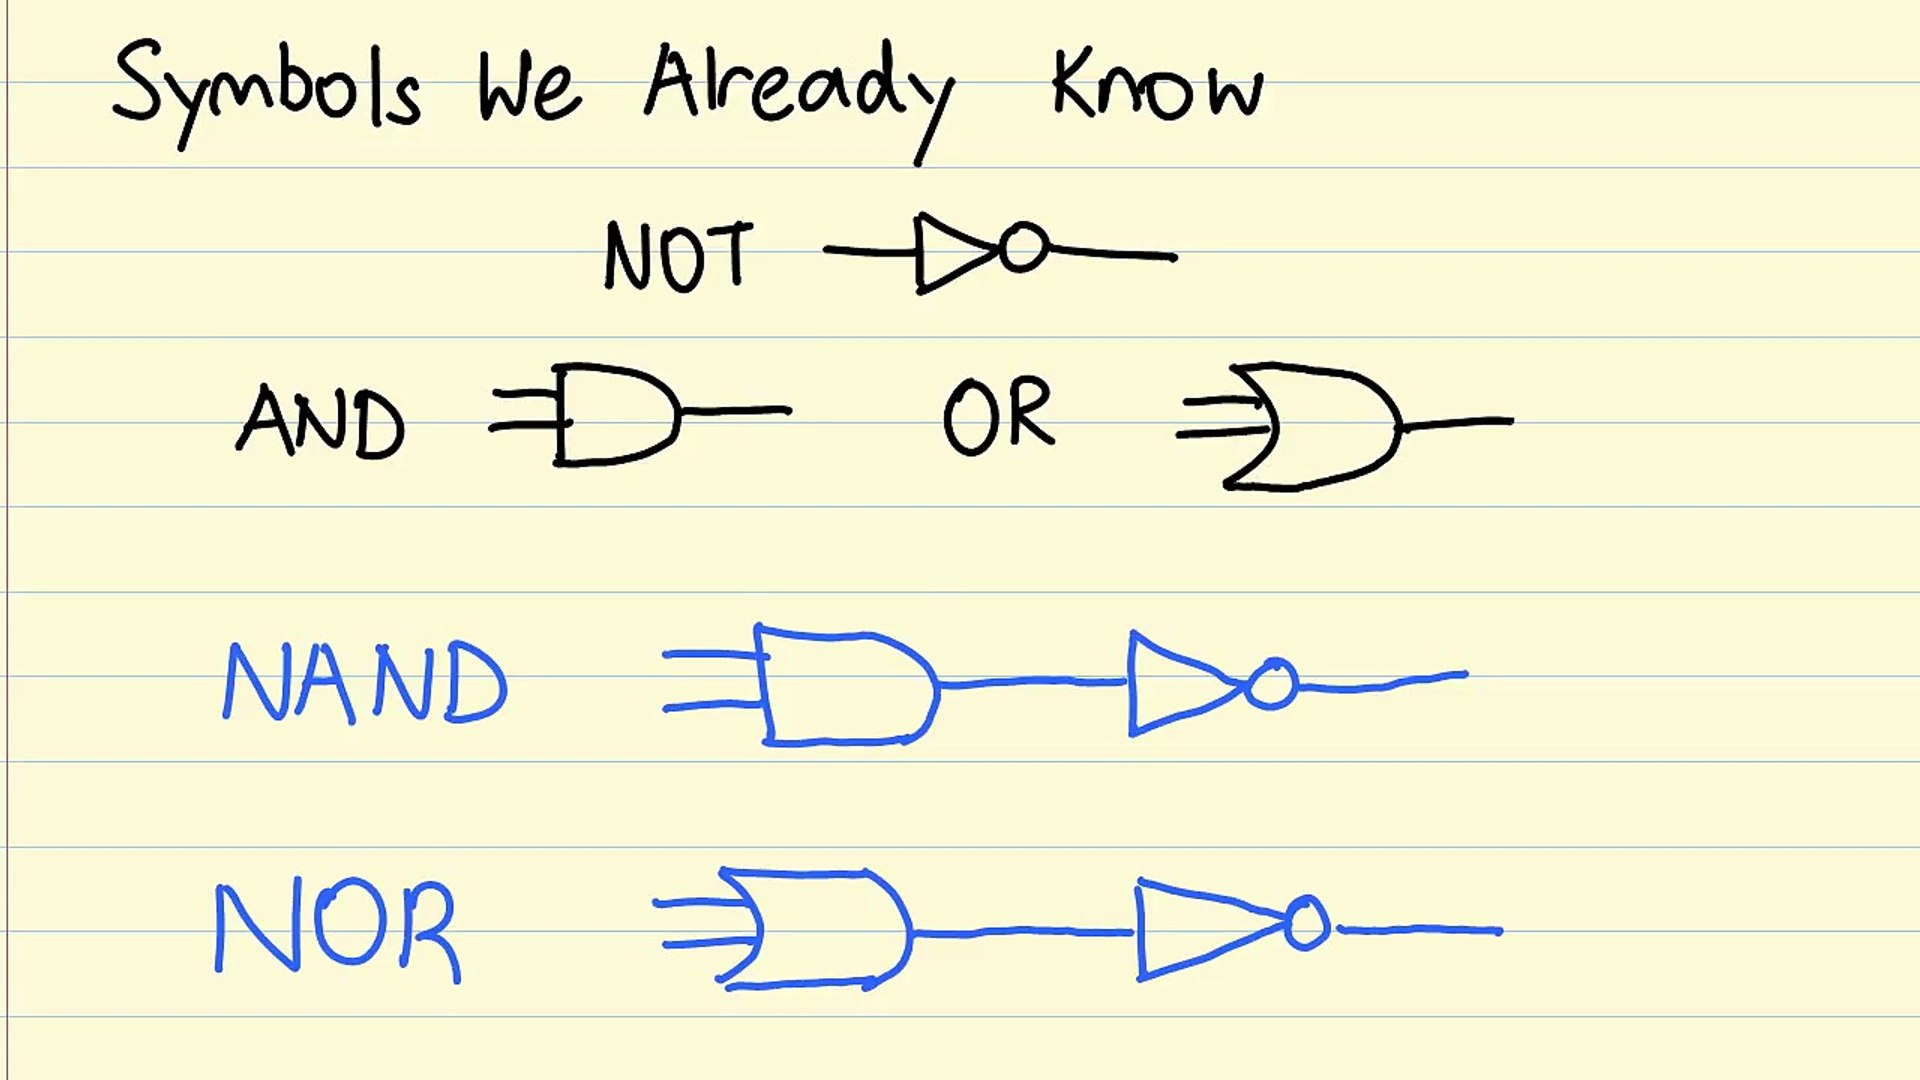 And Or Nand Nor Xor Xnor logic gates 04: nand, nor, xor and xnor